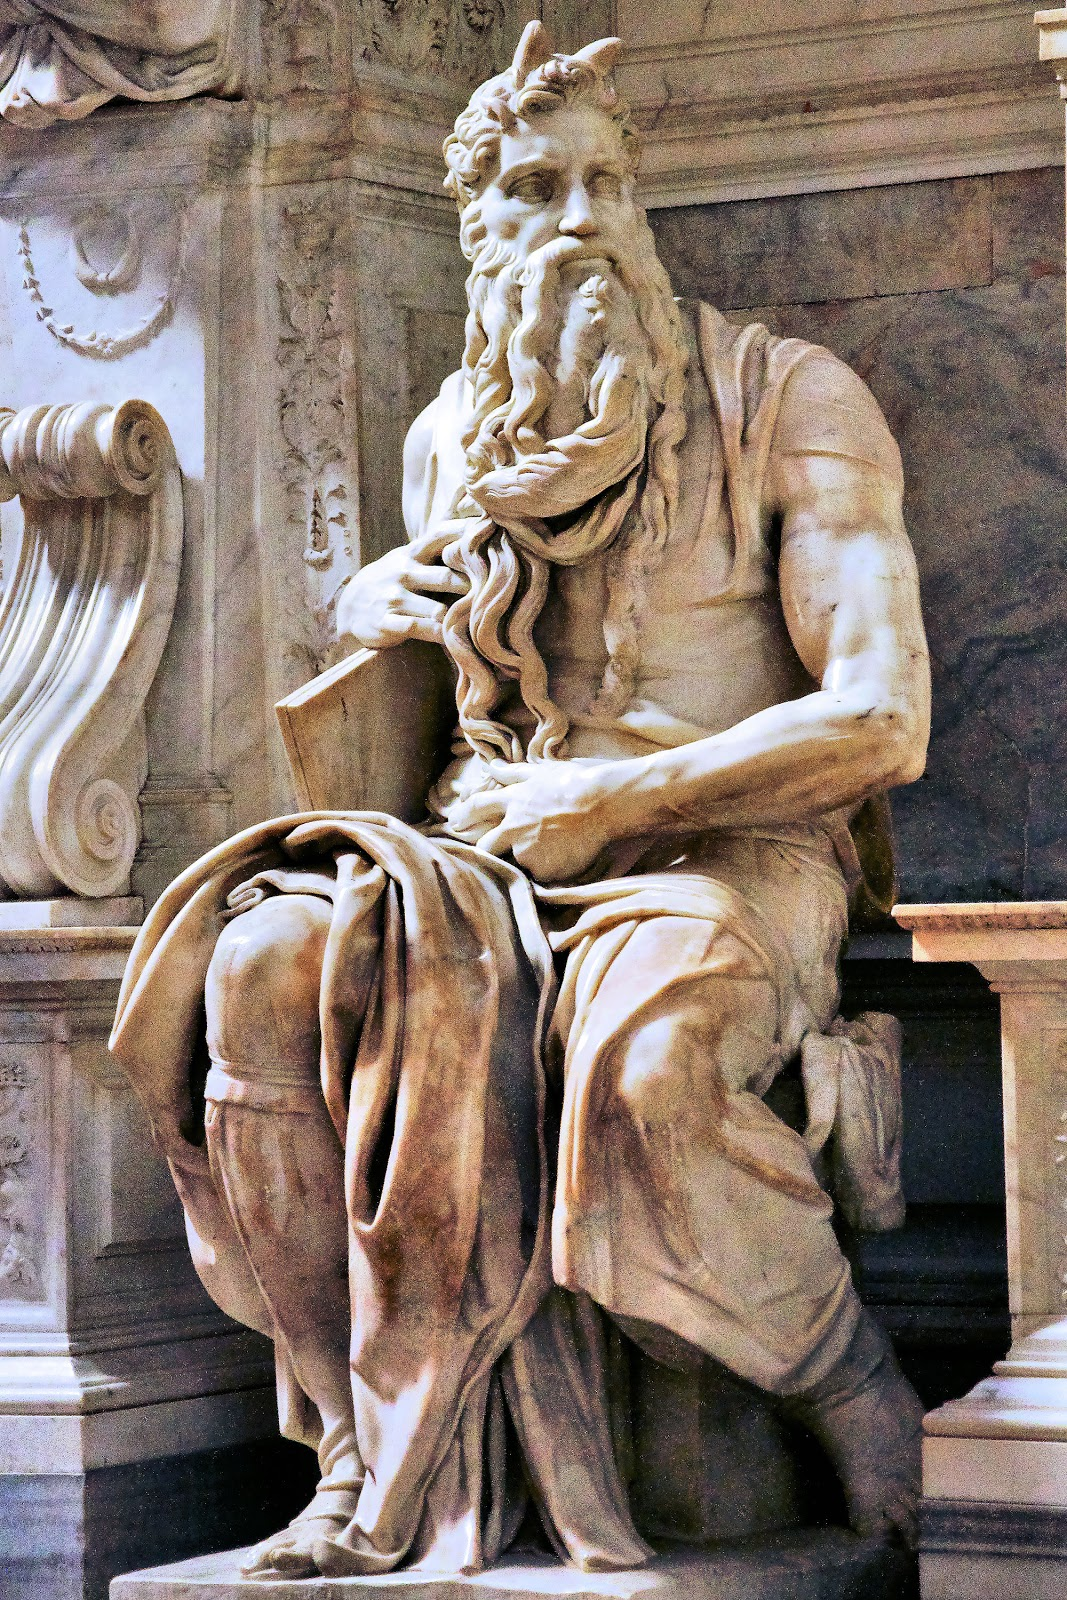 'Moses' by Michelangelo decorates the tomb of Pope Julius II inside Saint Peter's in Vincoli (chains). Photo: WikiMedia.org.